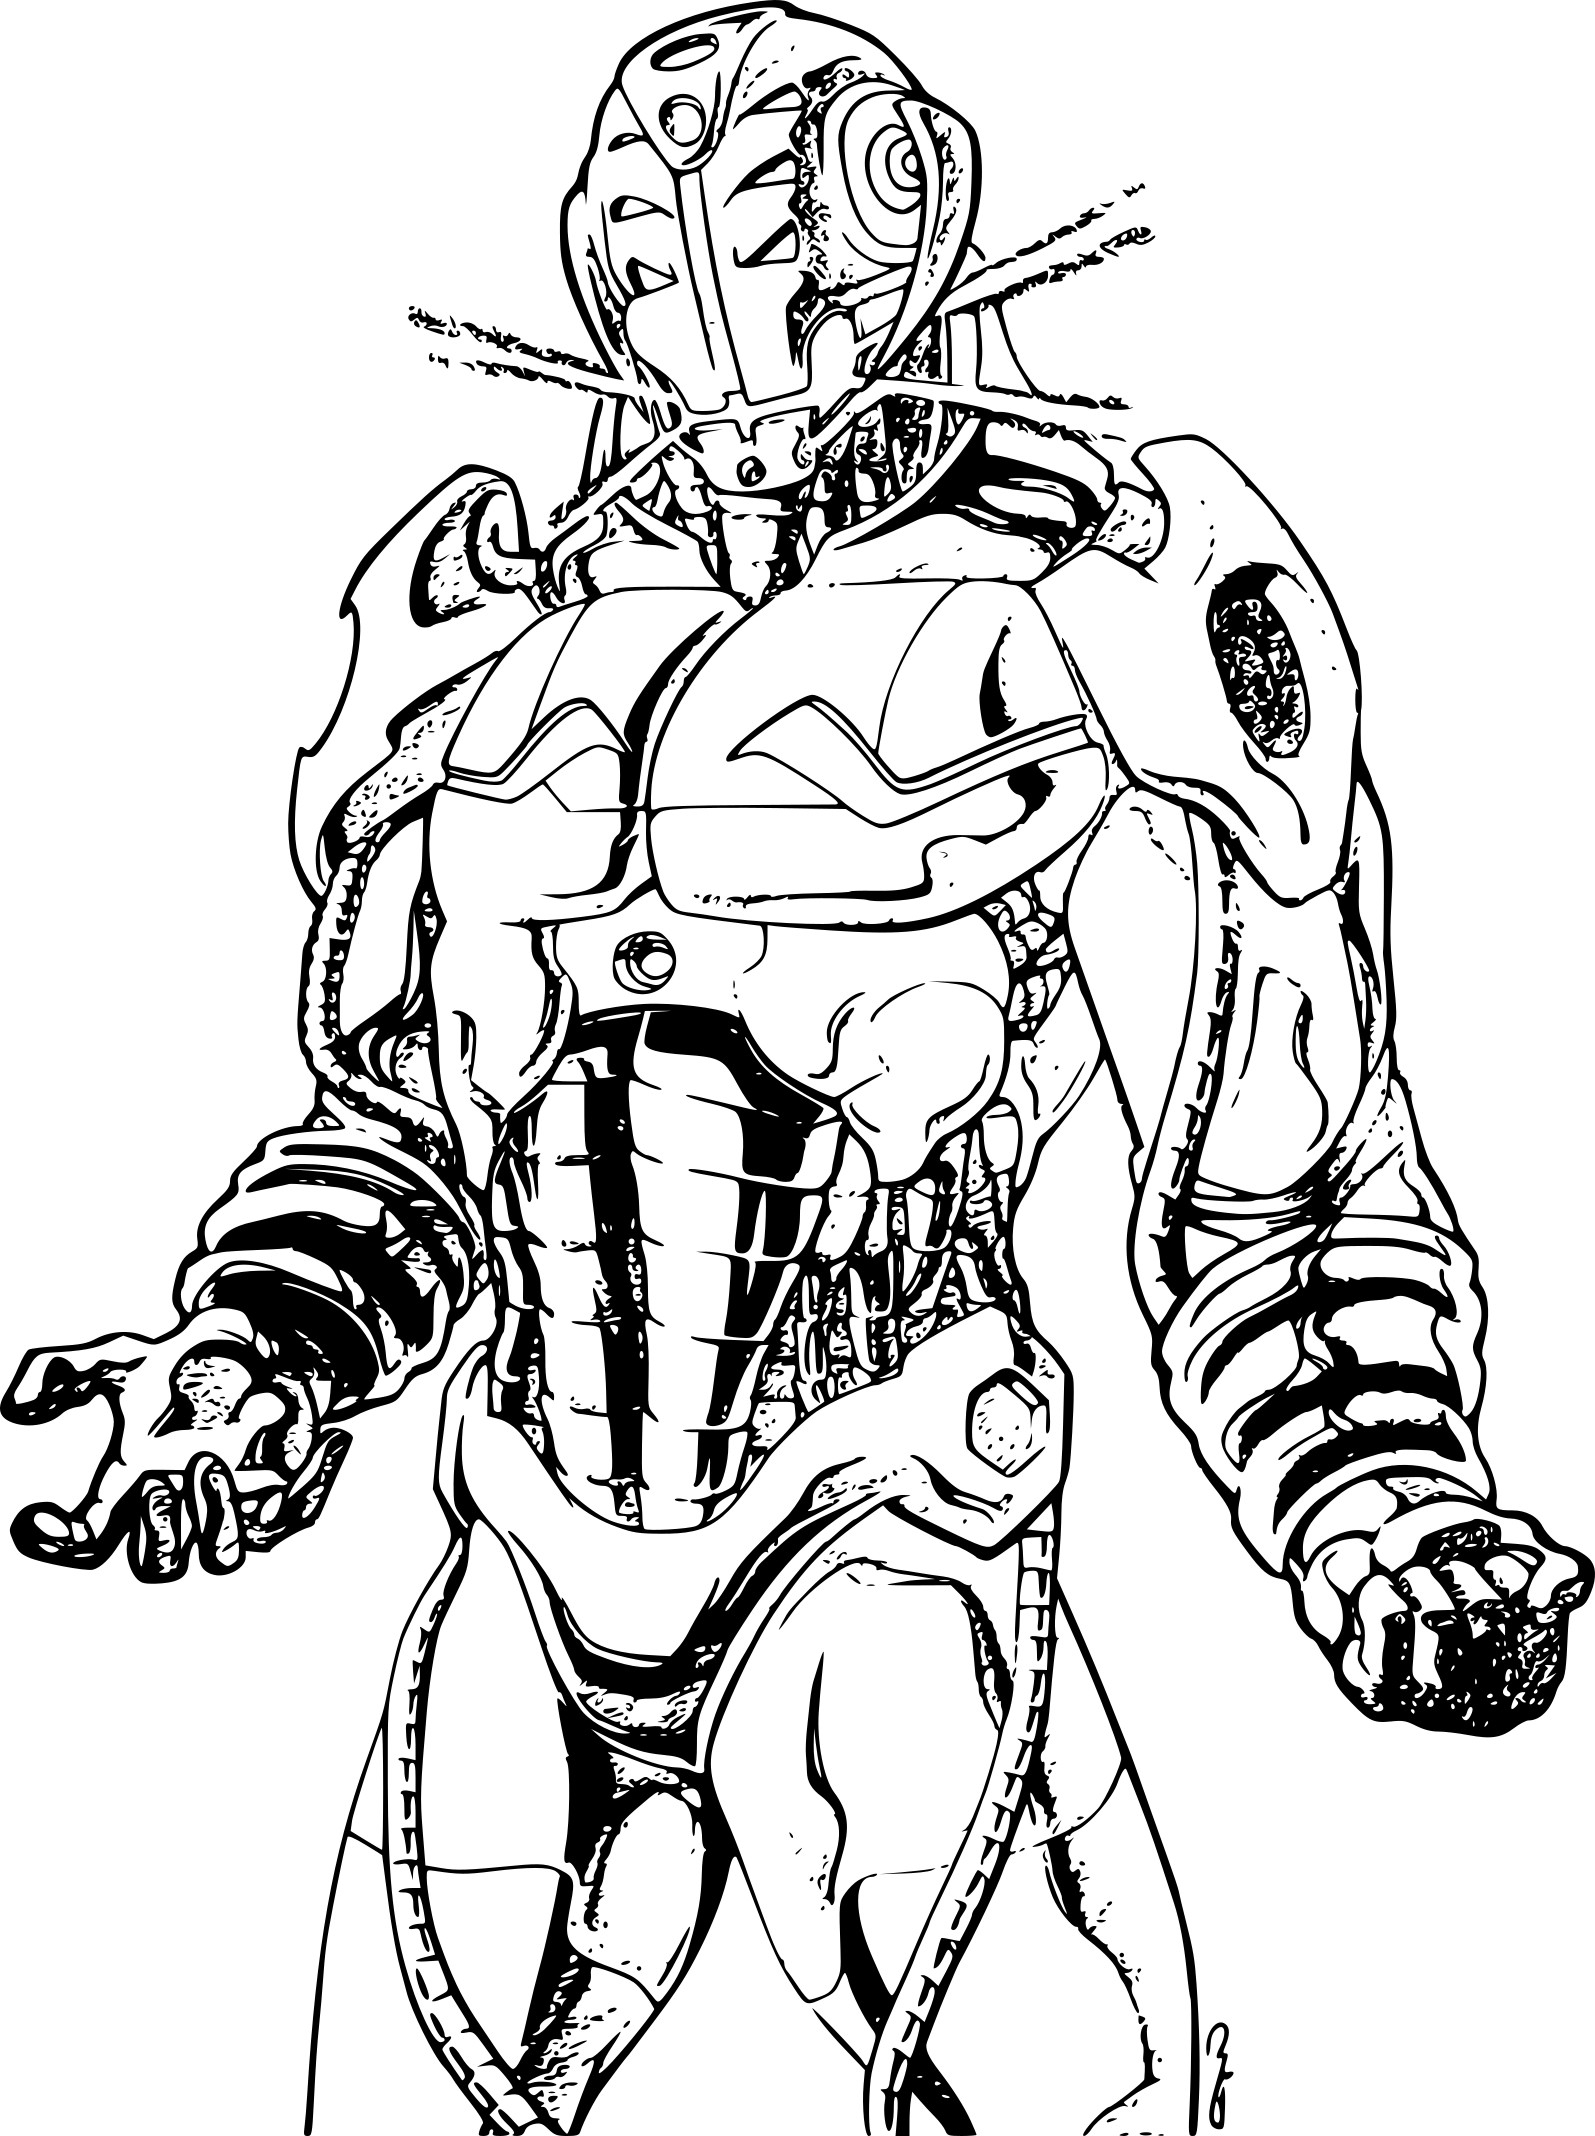 20 Iron Man Coloring Pages Images | FREE COLORING PAGES